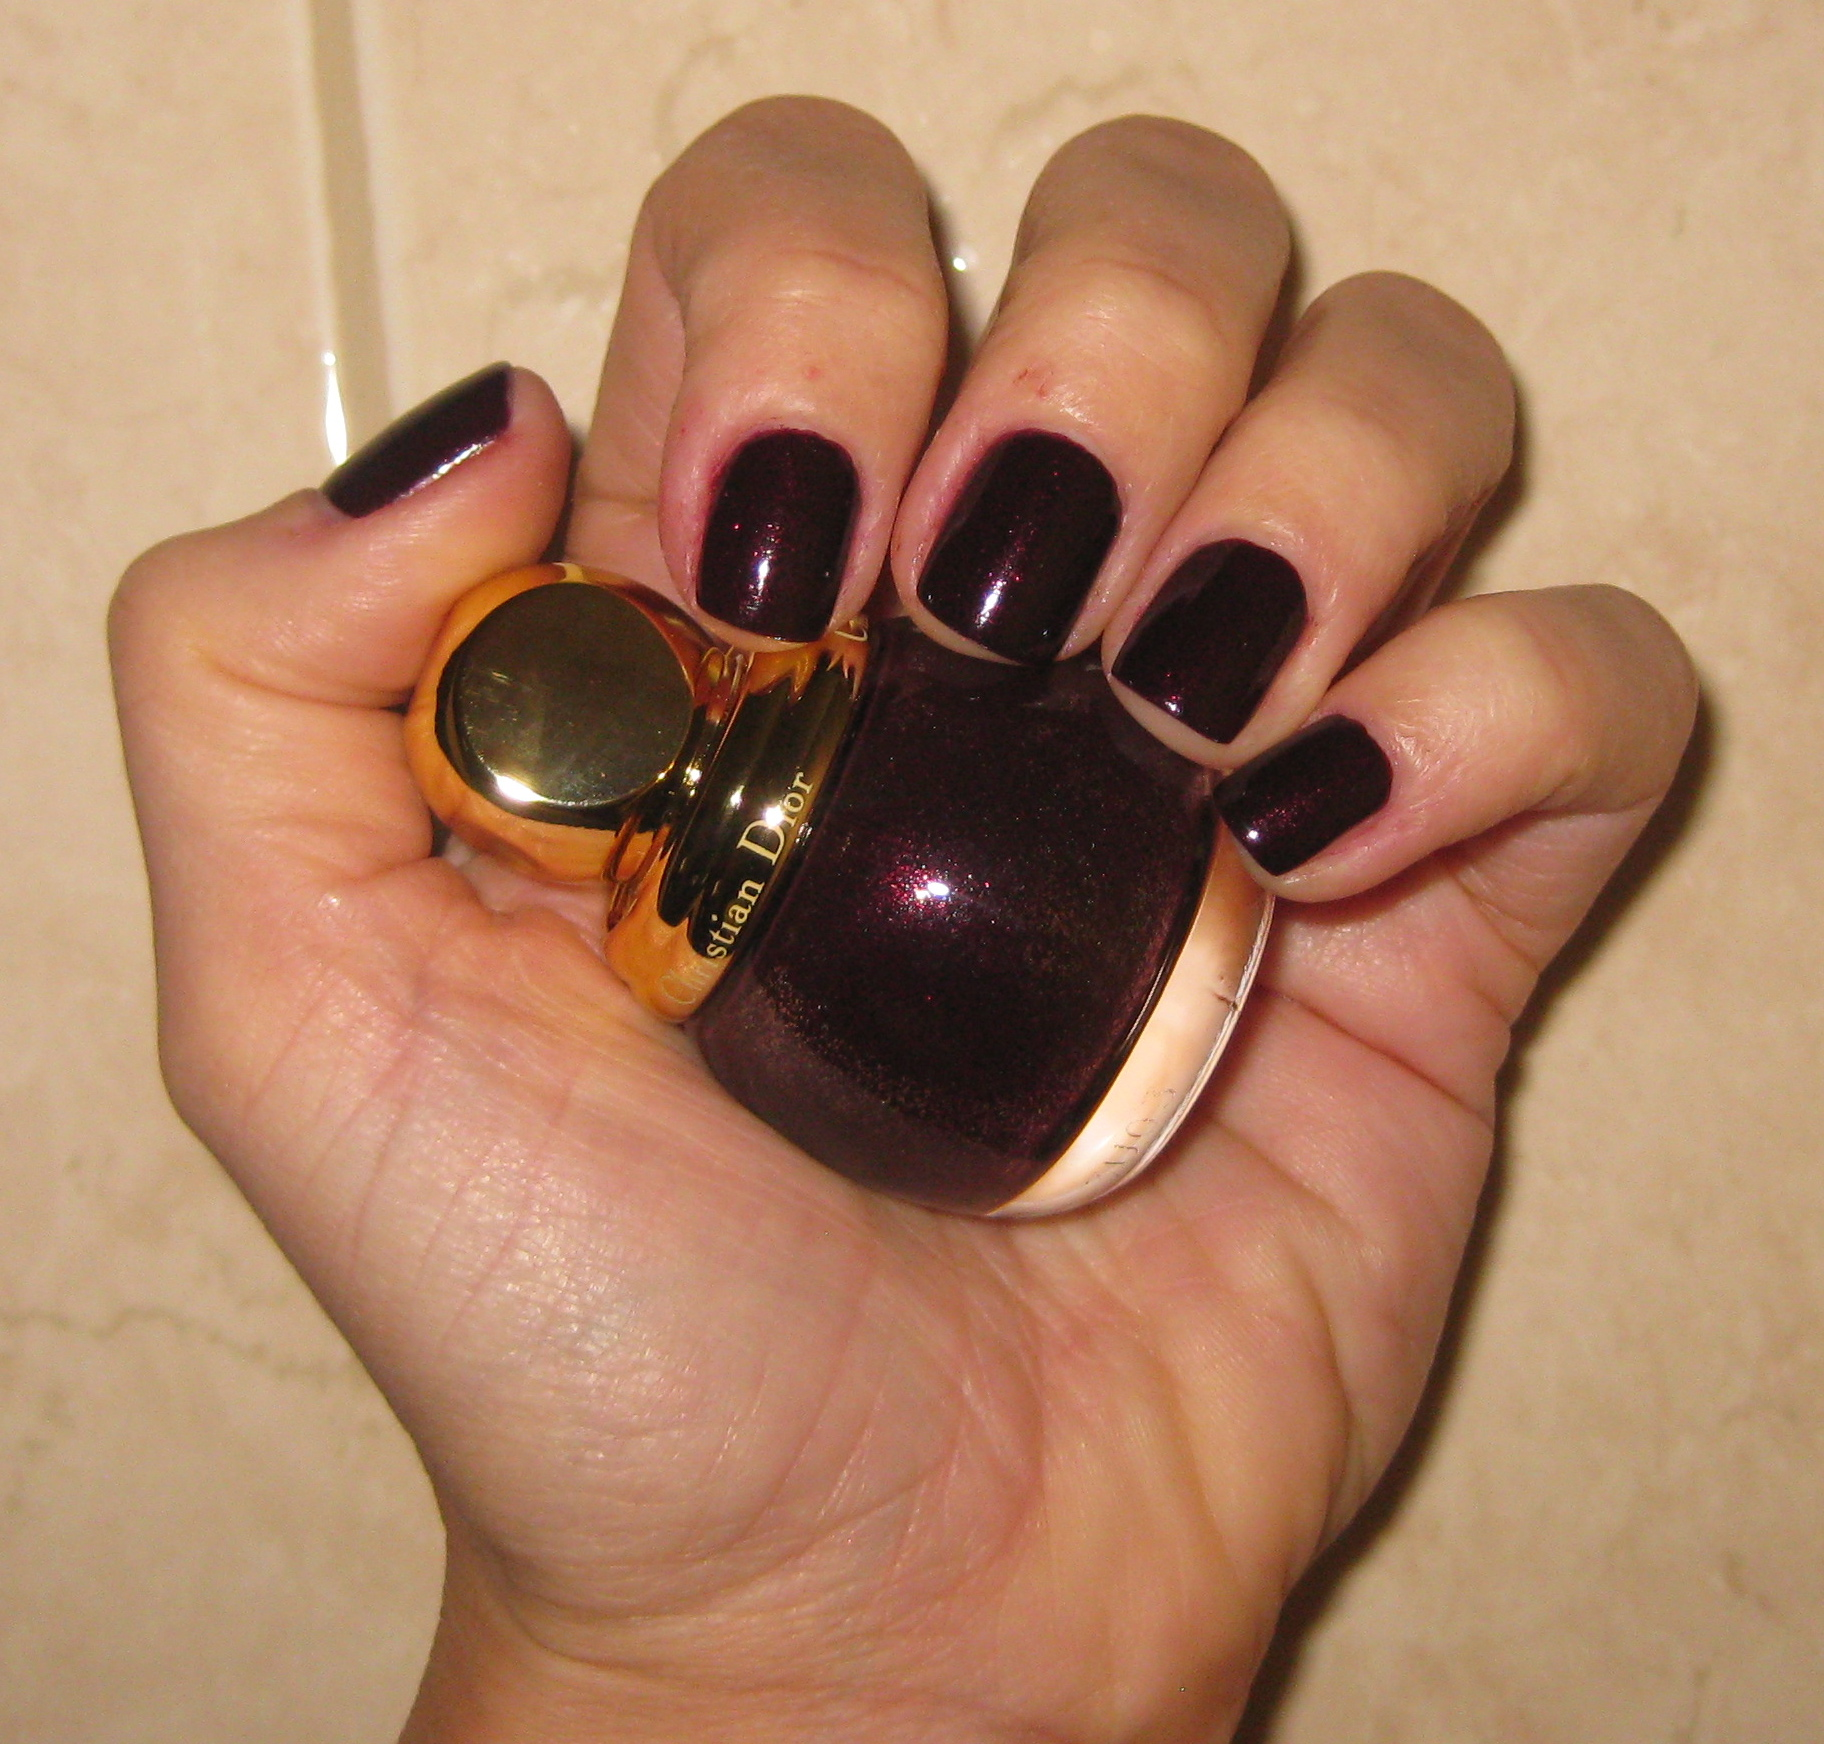 Top Dior Minuit Diorific Vernis Nail Polish is truly a midnight passion! NC38